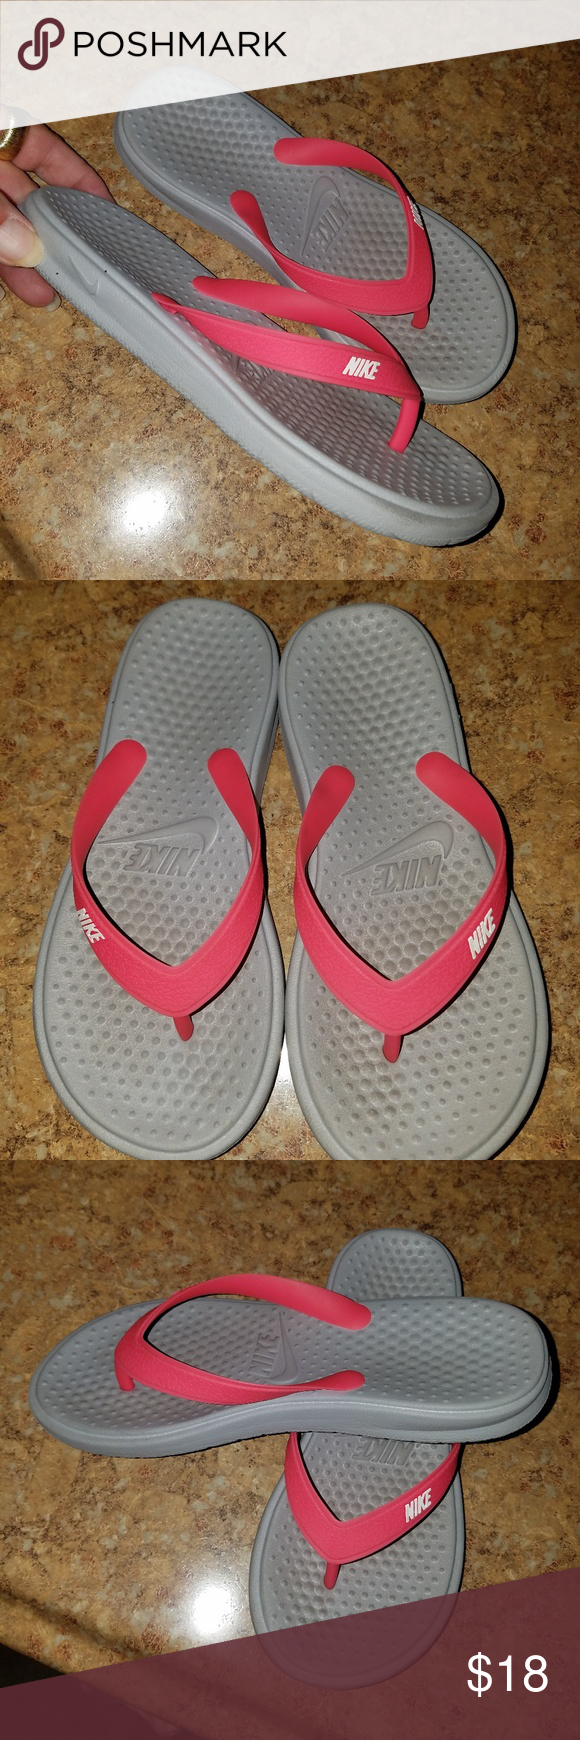 c3bb90d106ea23 Nike Toddler Flipflops size 13 Nike Toddler Flipflops size 13. Very good  used condition. The straps are tight Nike Shoes Sandals   Flip Flops